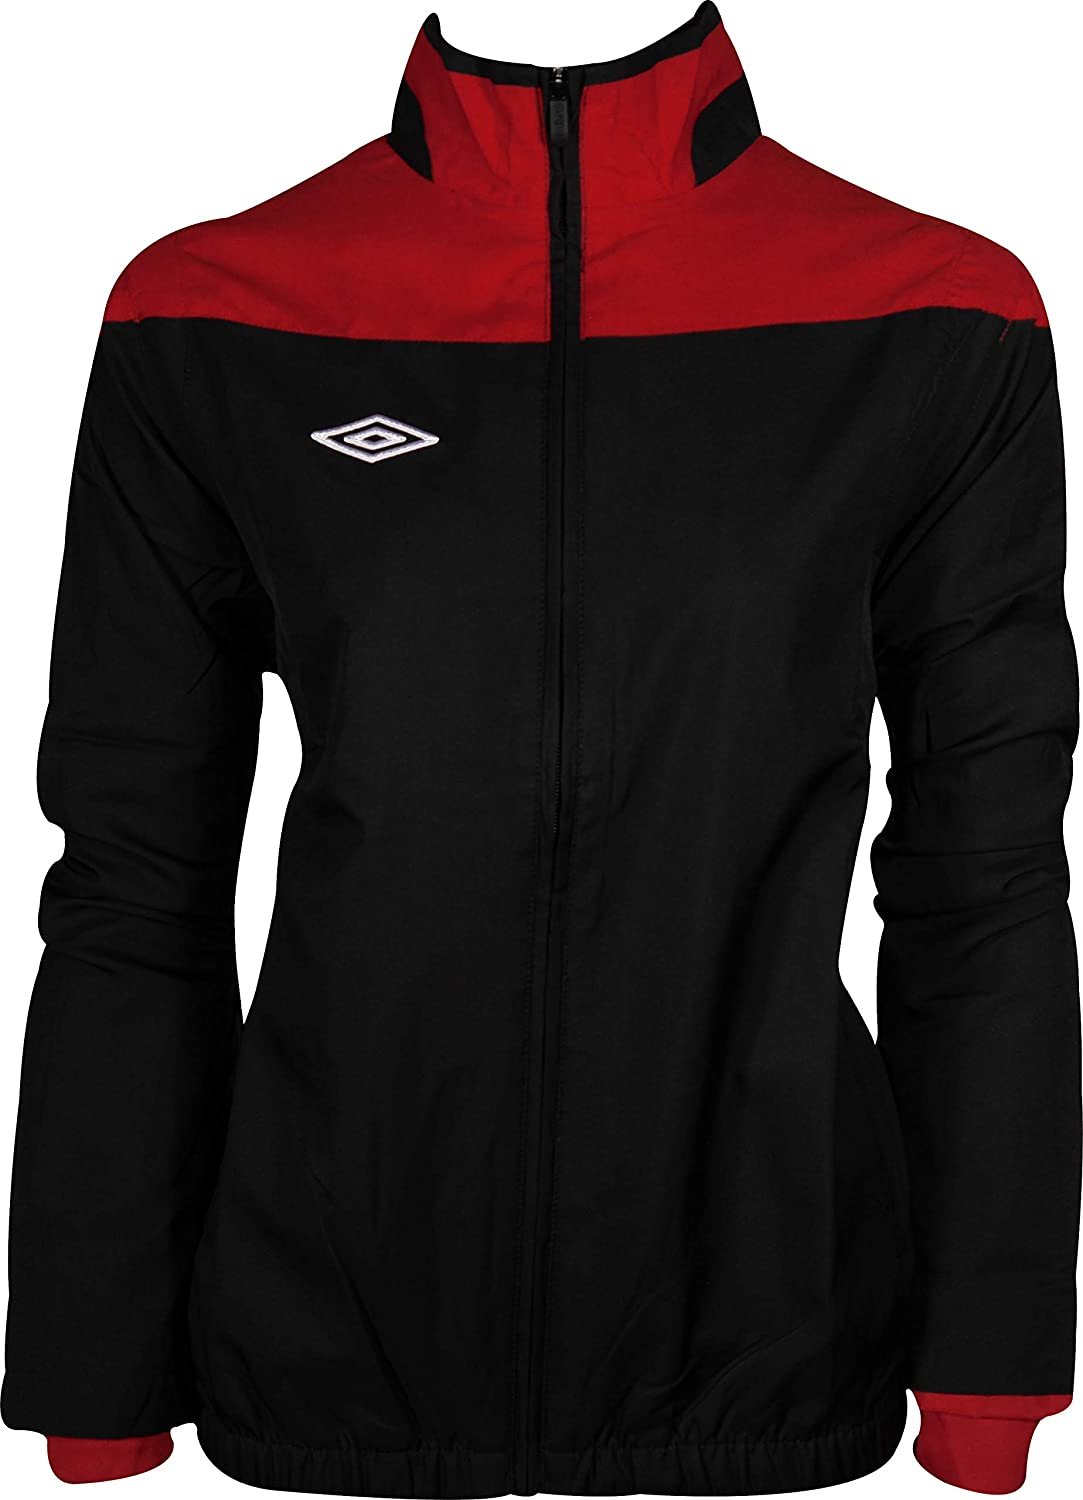 umbro training jacket